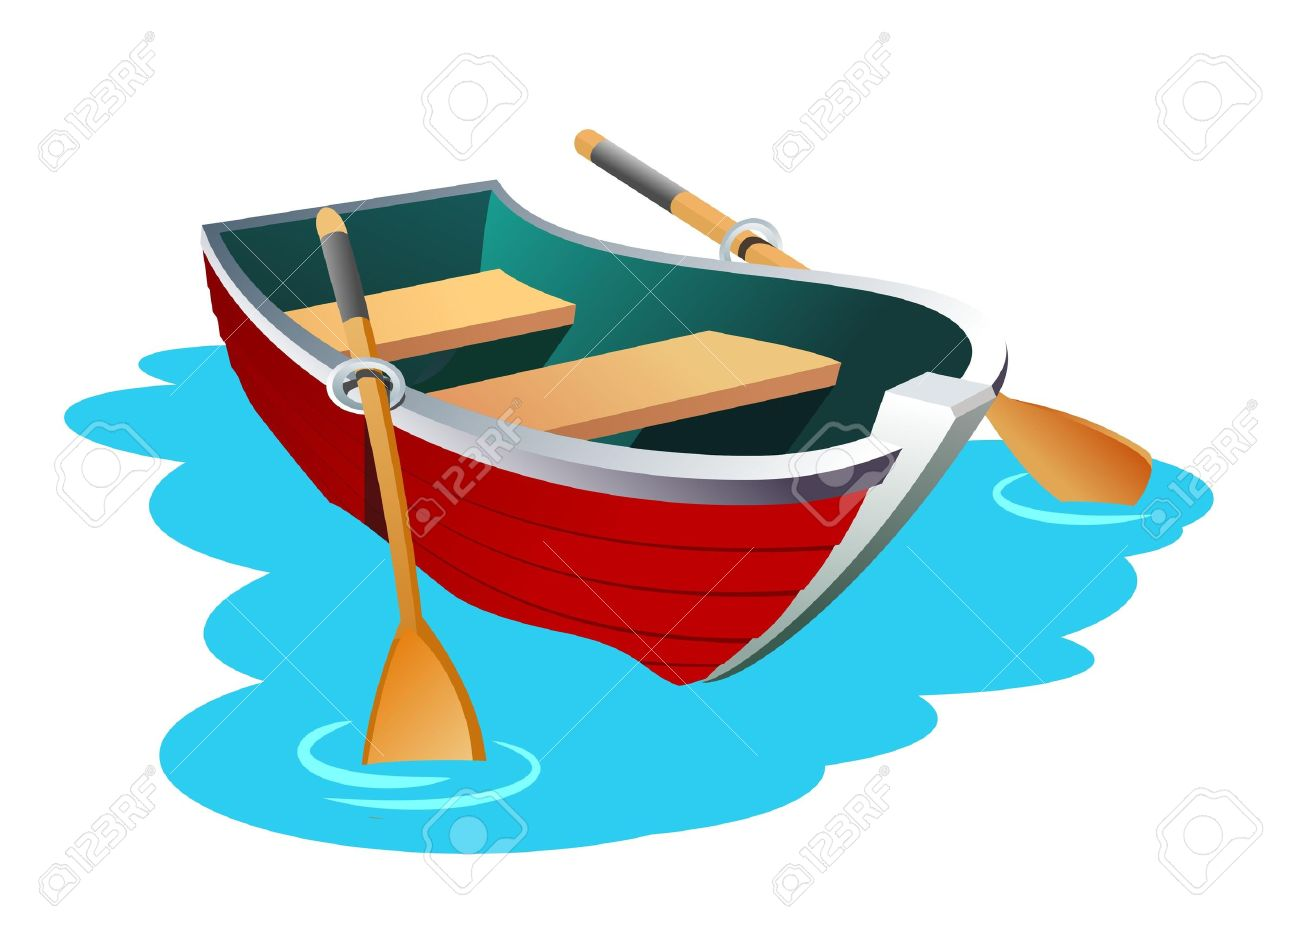 Rowing Boat Clipart.